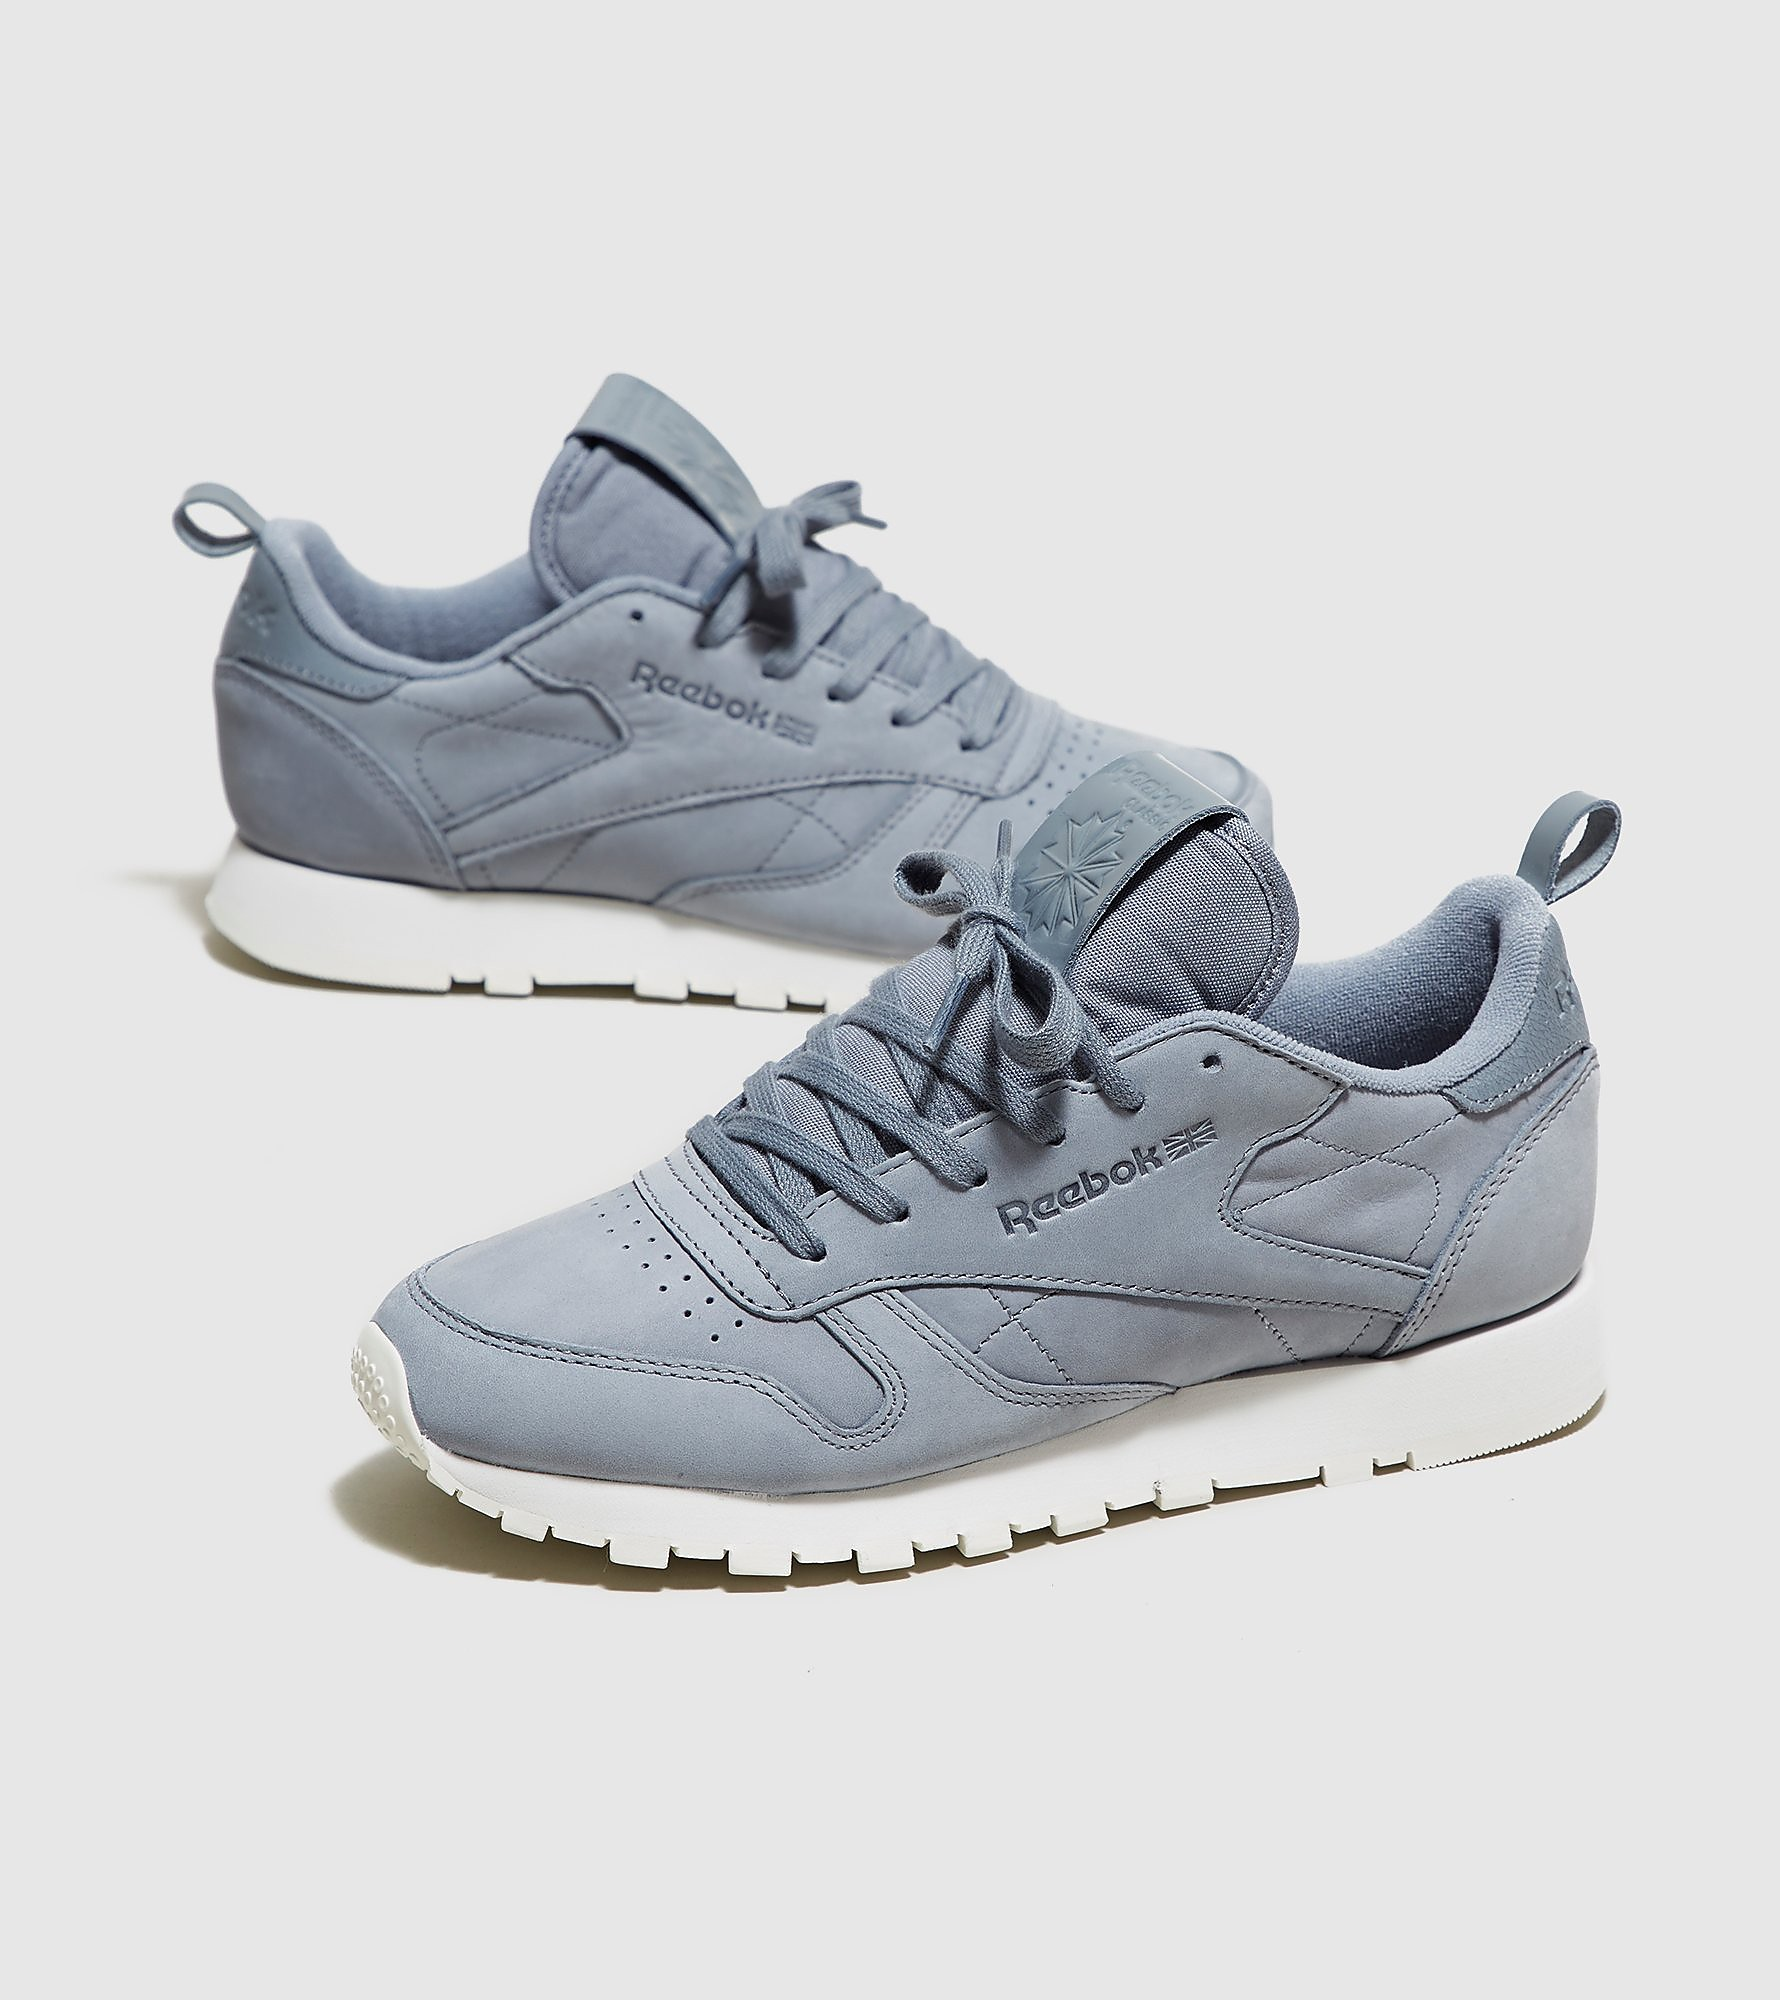 Reebok Classic Leather Montezuma Nubuck Women's